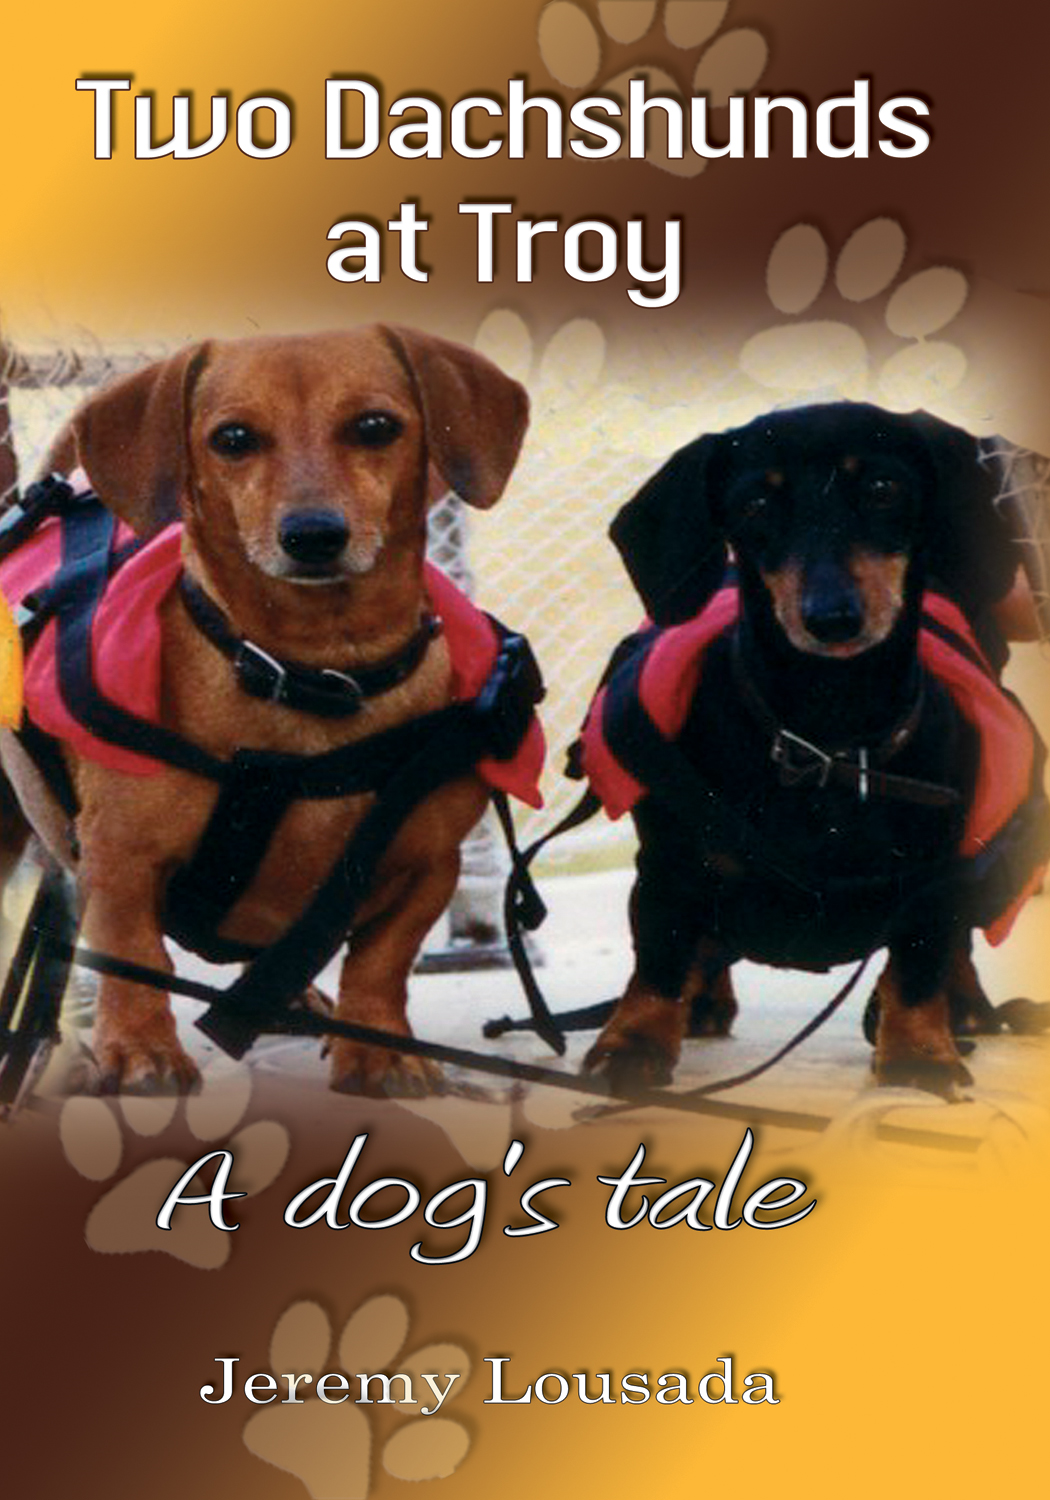 Two Dachshunds at Troy By: Jeremy Lousada